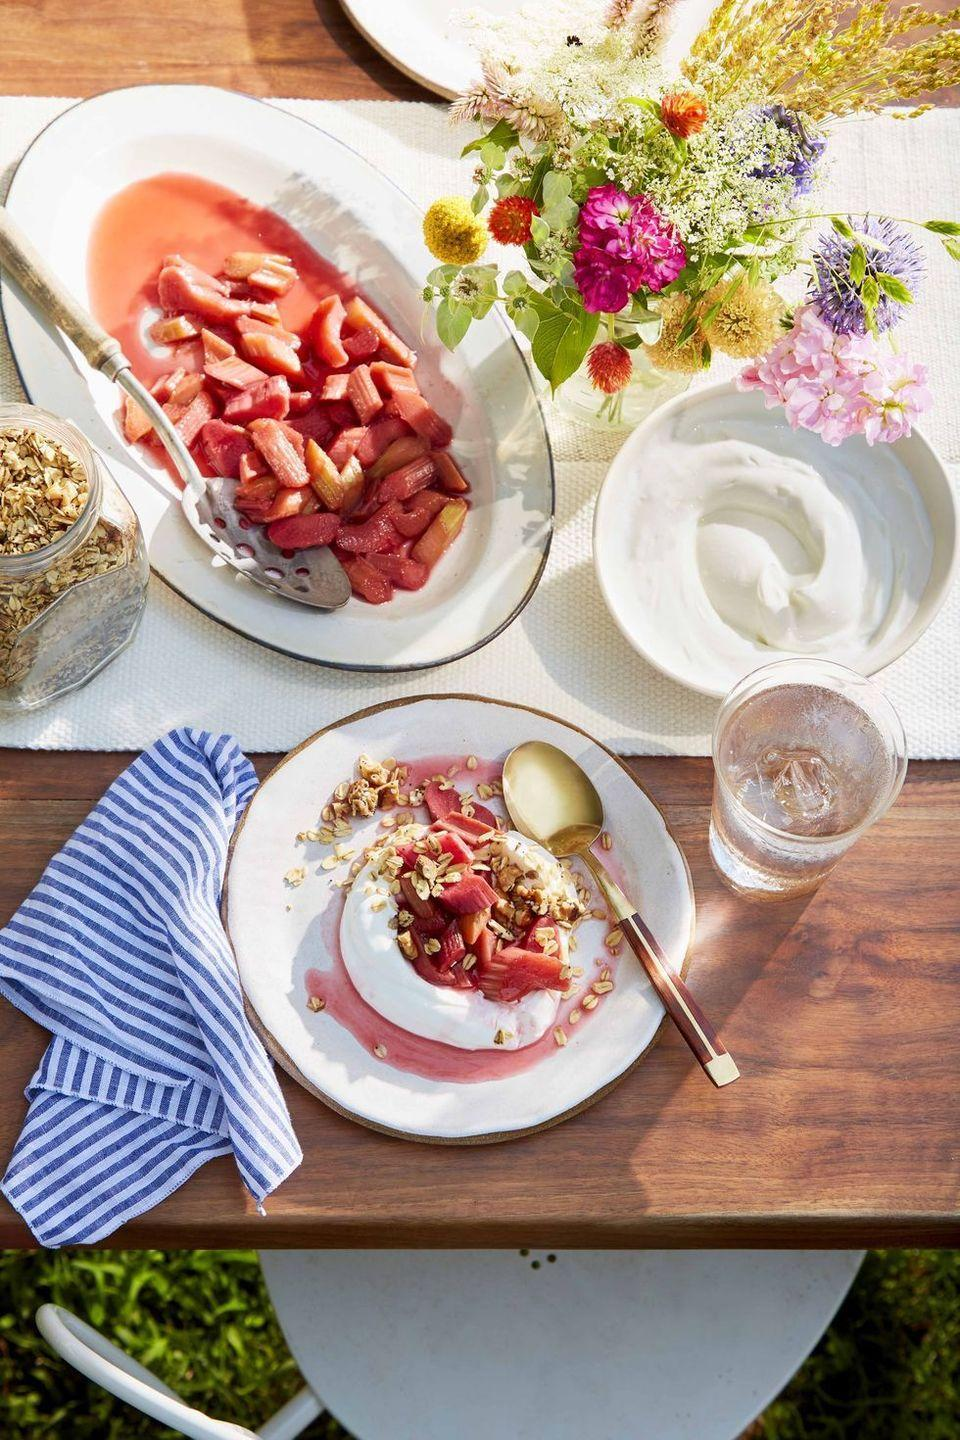 """<p>Extra tart rhubarb, poached in maple syrup, makes a delicious and elegant topping for your favorite breakfast yogurt.</p><p><strong><a href=""""https://www.countryliving.com/food-drinks/a32353901/poached-rhubarb-with-yogurt/"""" rel=""""nofollow noopener"""" target=""""_blank"""" data-ylk=""""slk:Get the recipe"""" class=""""link rapid-noclick-resp"""">Get the recipe</a>.</strong></p>"""